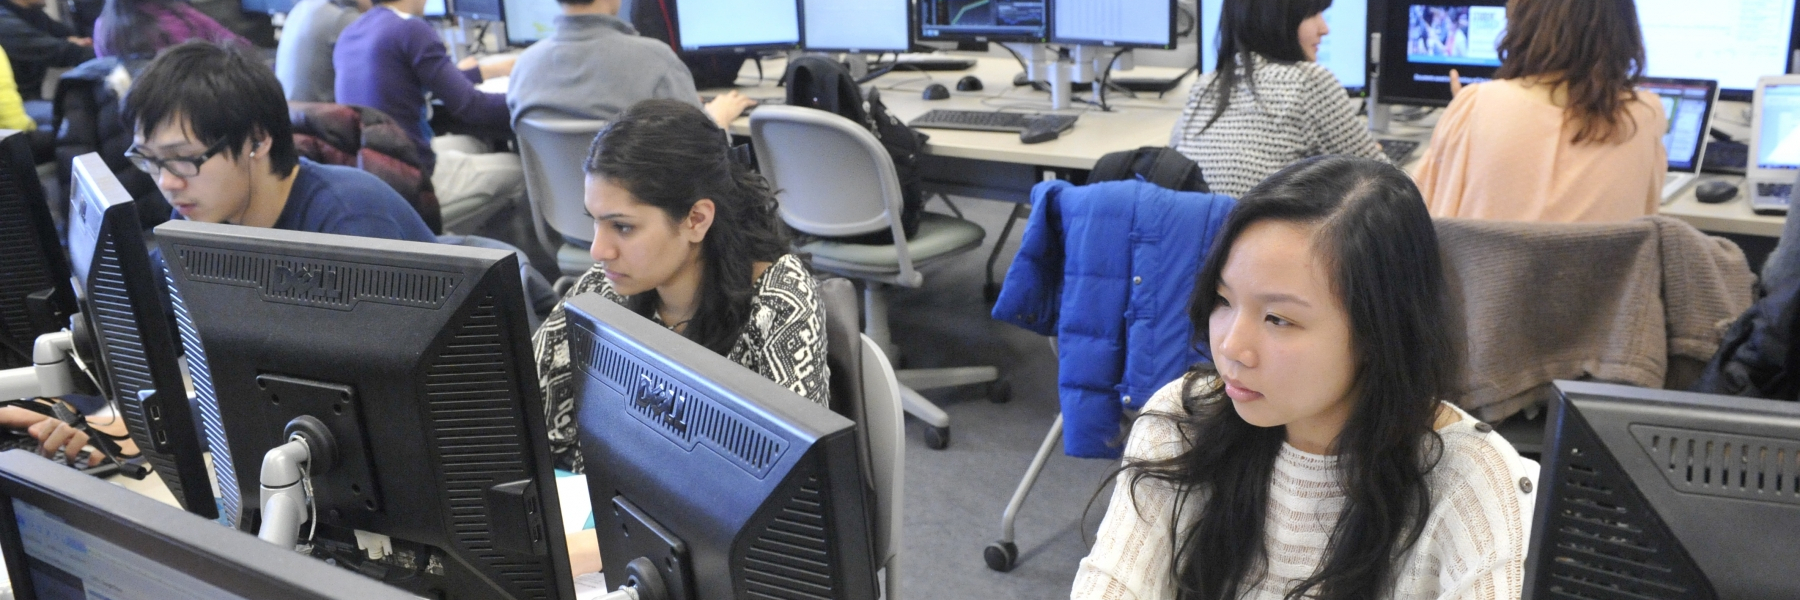 students in a finance lab